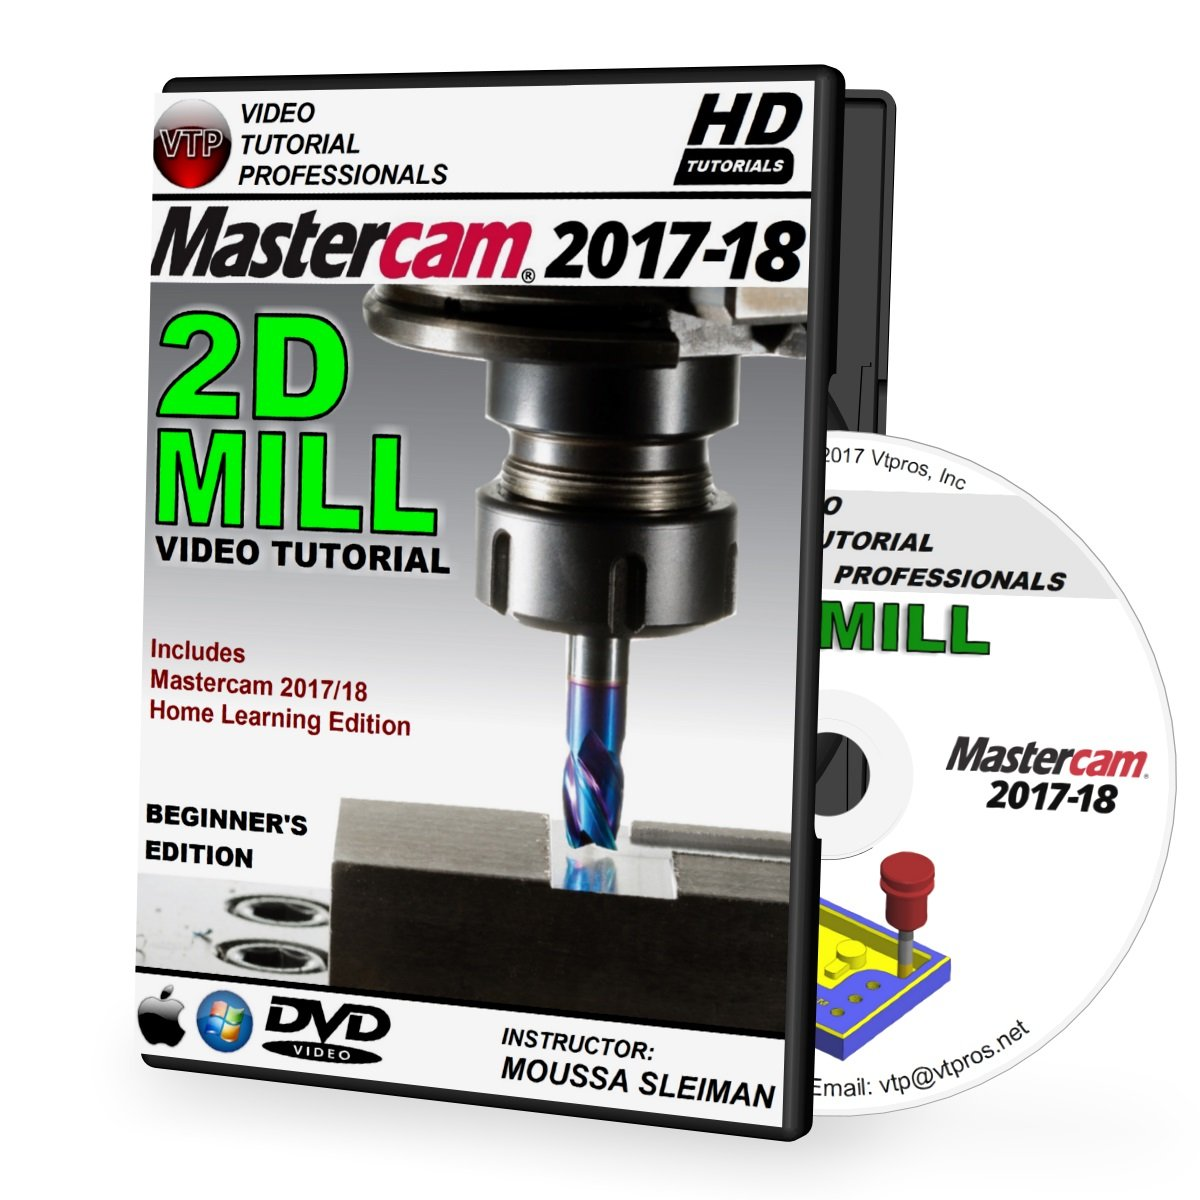 Mastercam 2017-2018 - 2D MILL Beginner 3-Axis Video Tutorial in 720p HD